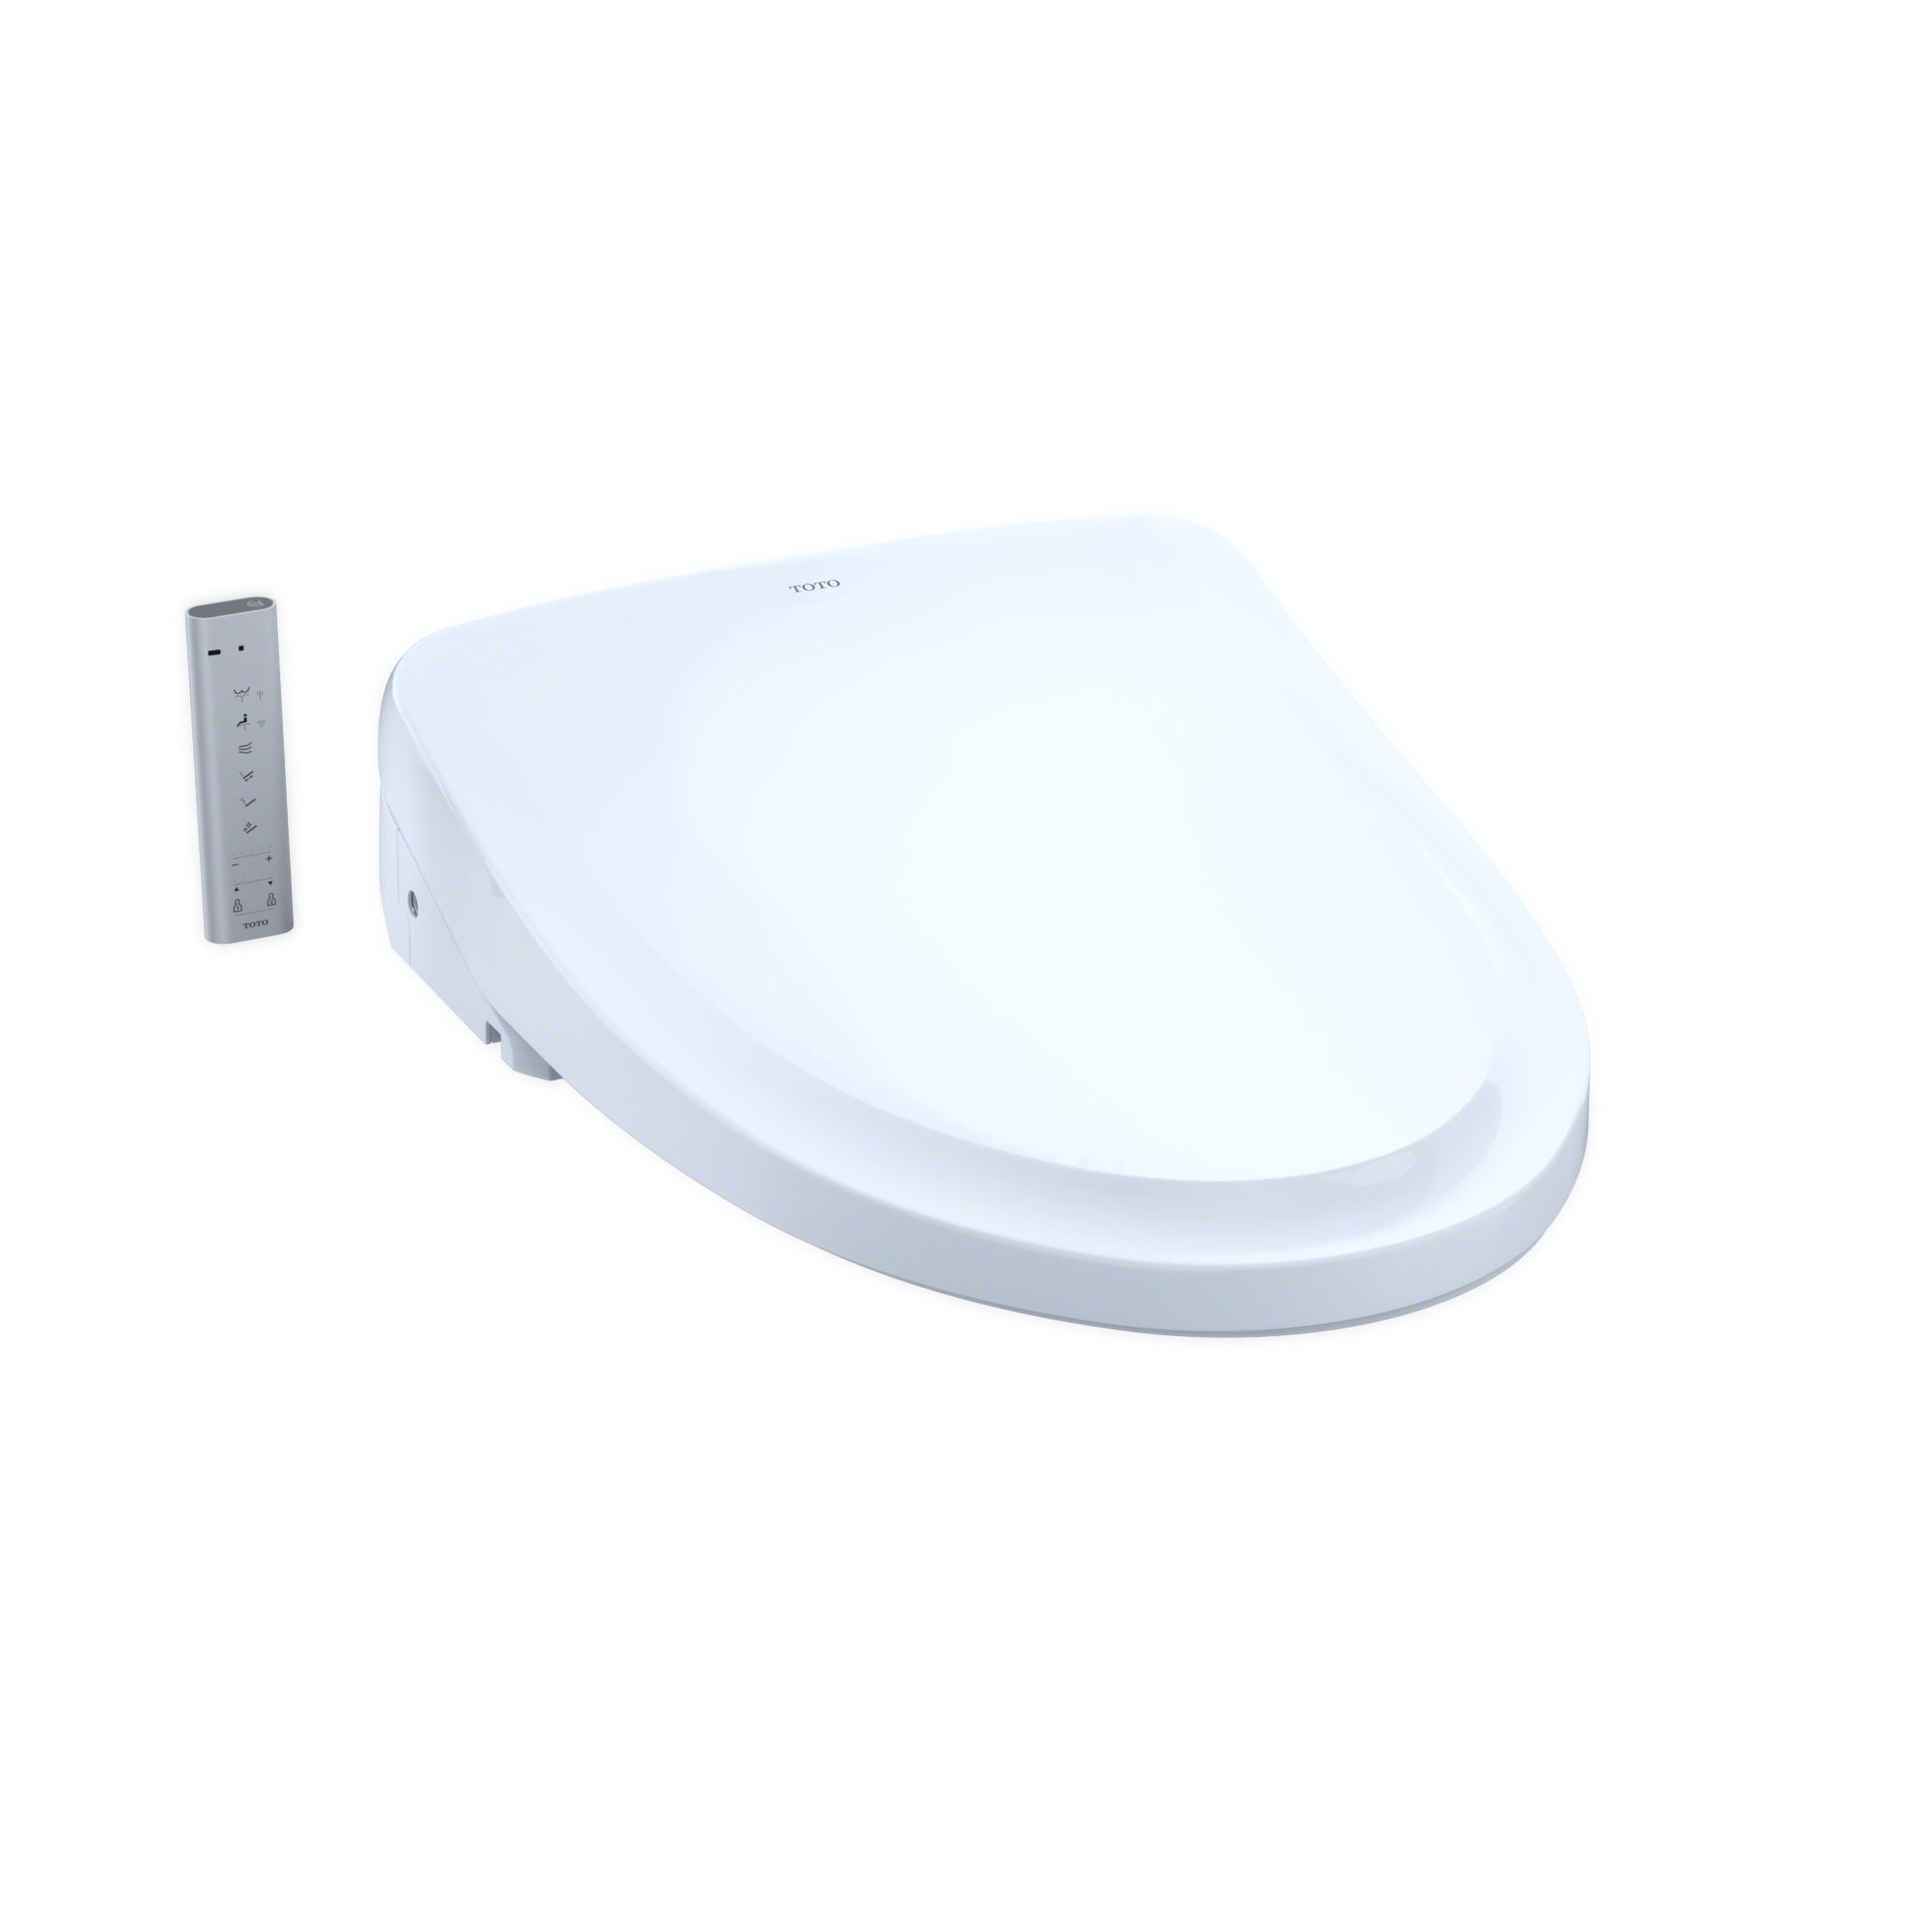 WASHLET S550e Elongated Bidet Toilet Seat with ewater+ and Auto Open and Close Classic Lid, Cotton White - SW3054#01